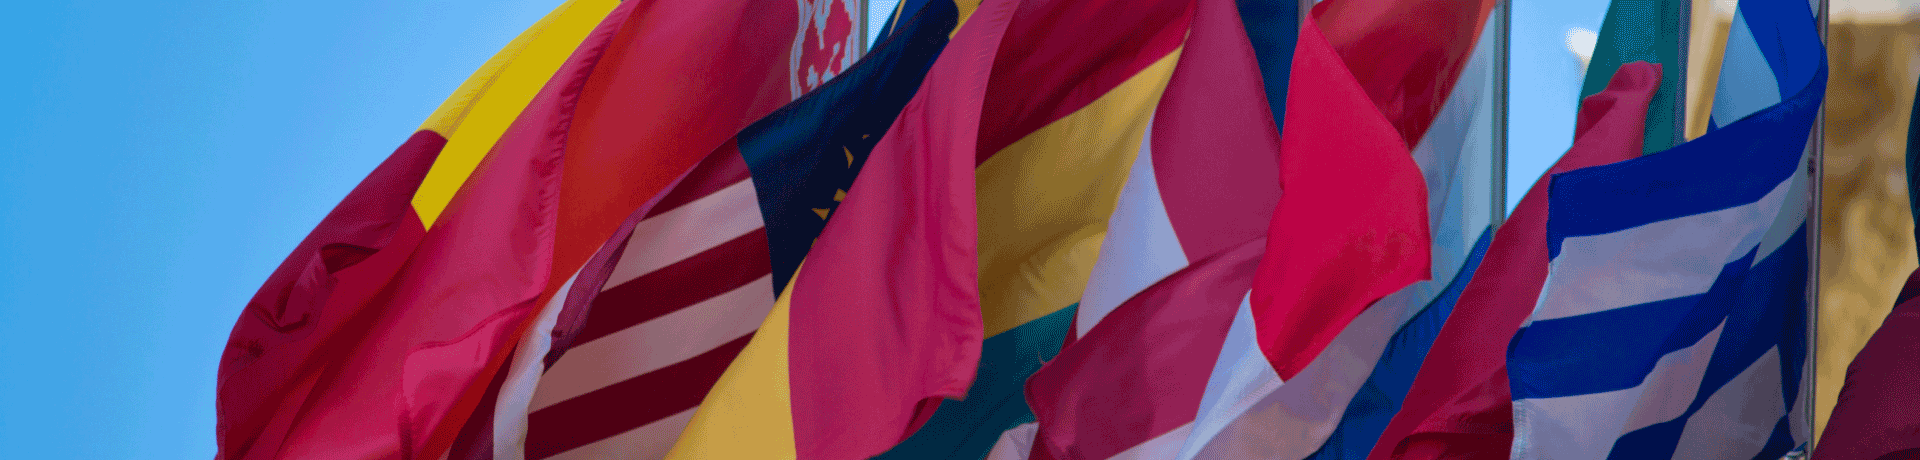 global flags 2019